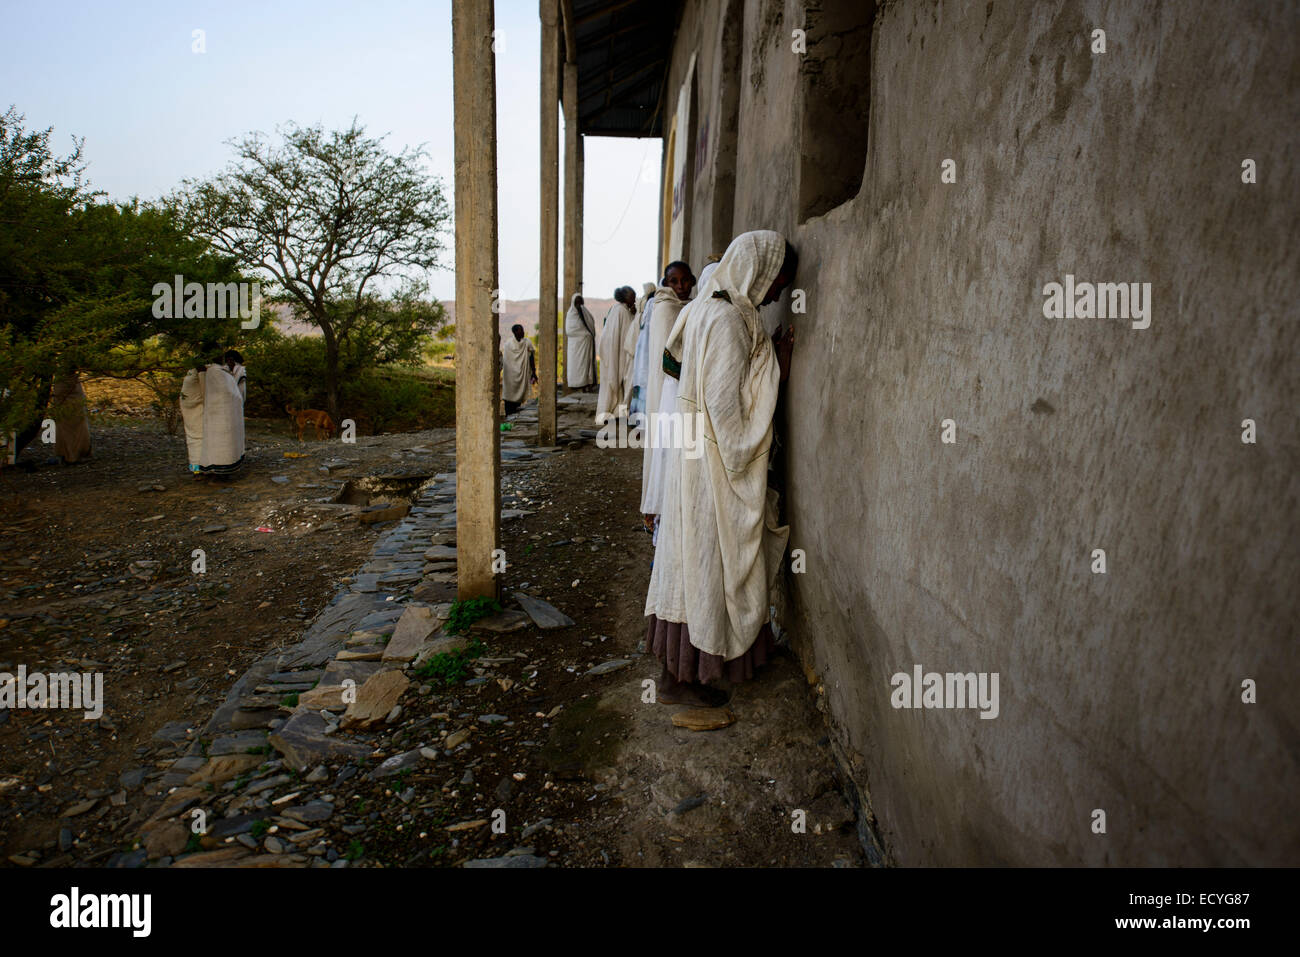 Followers of the Ethiopian Orthodox church, Ethiopia - Stock Image